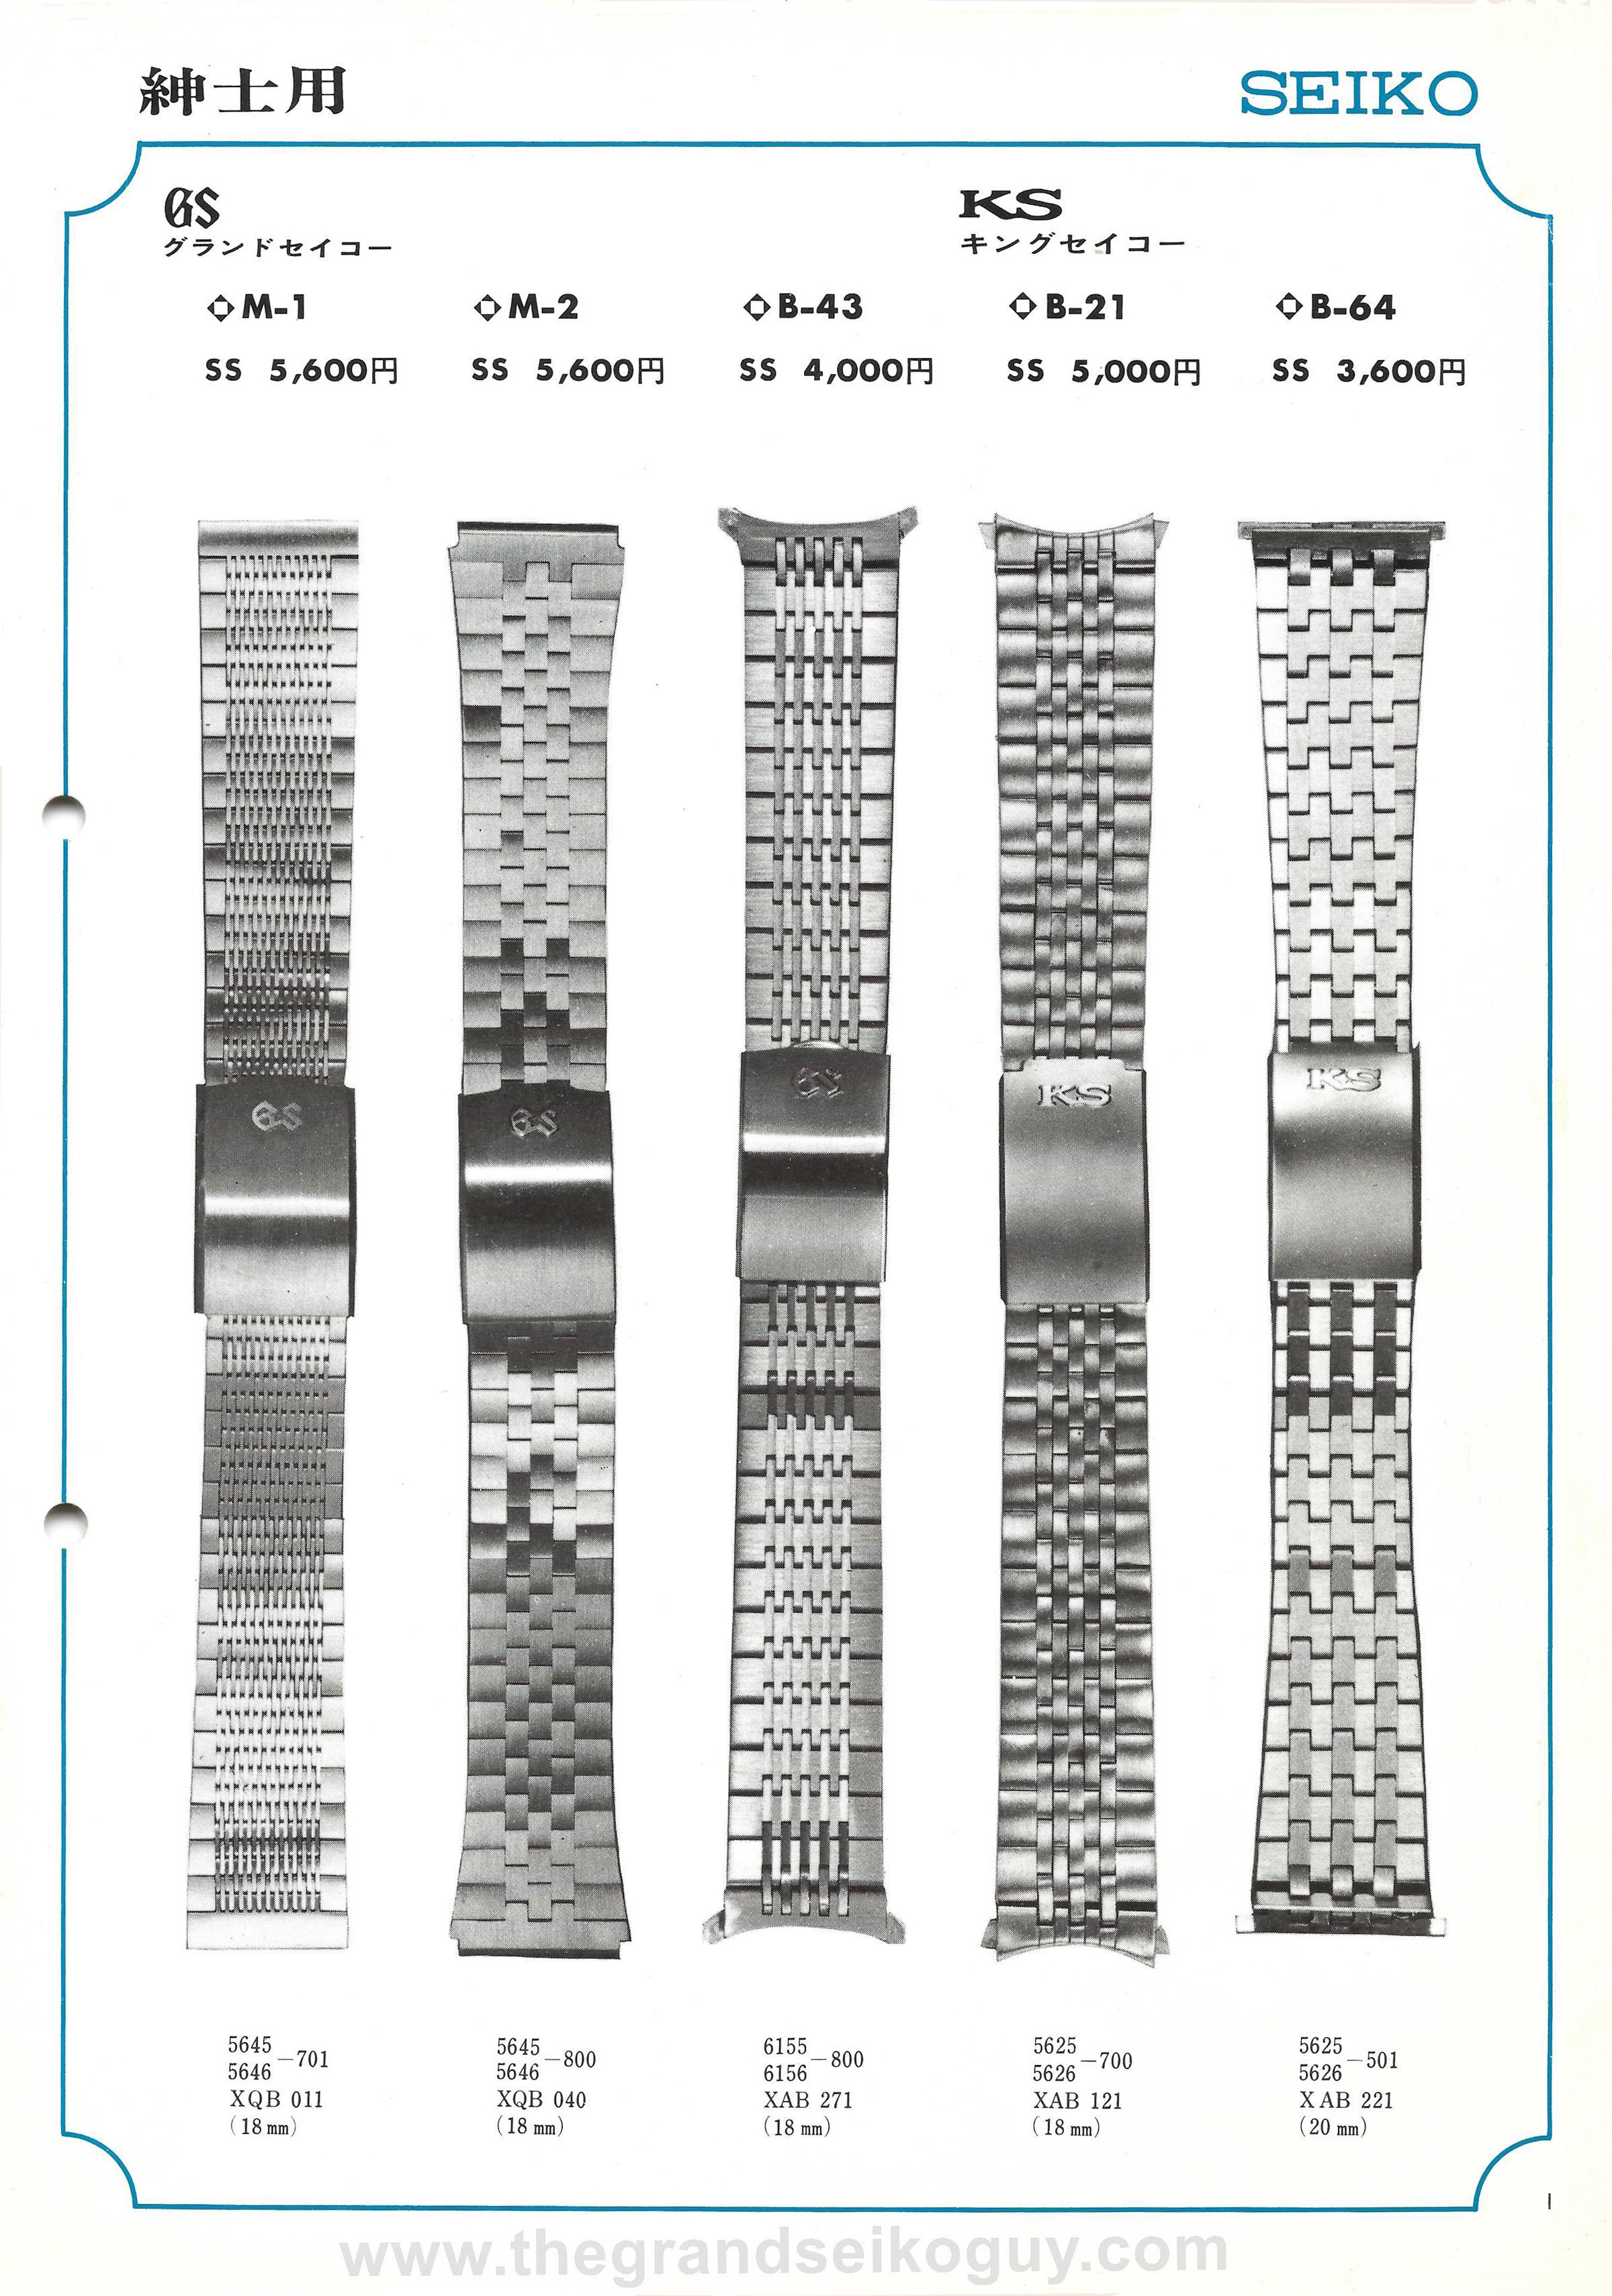 1972-1 Watchband Catalog - p01.jpg